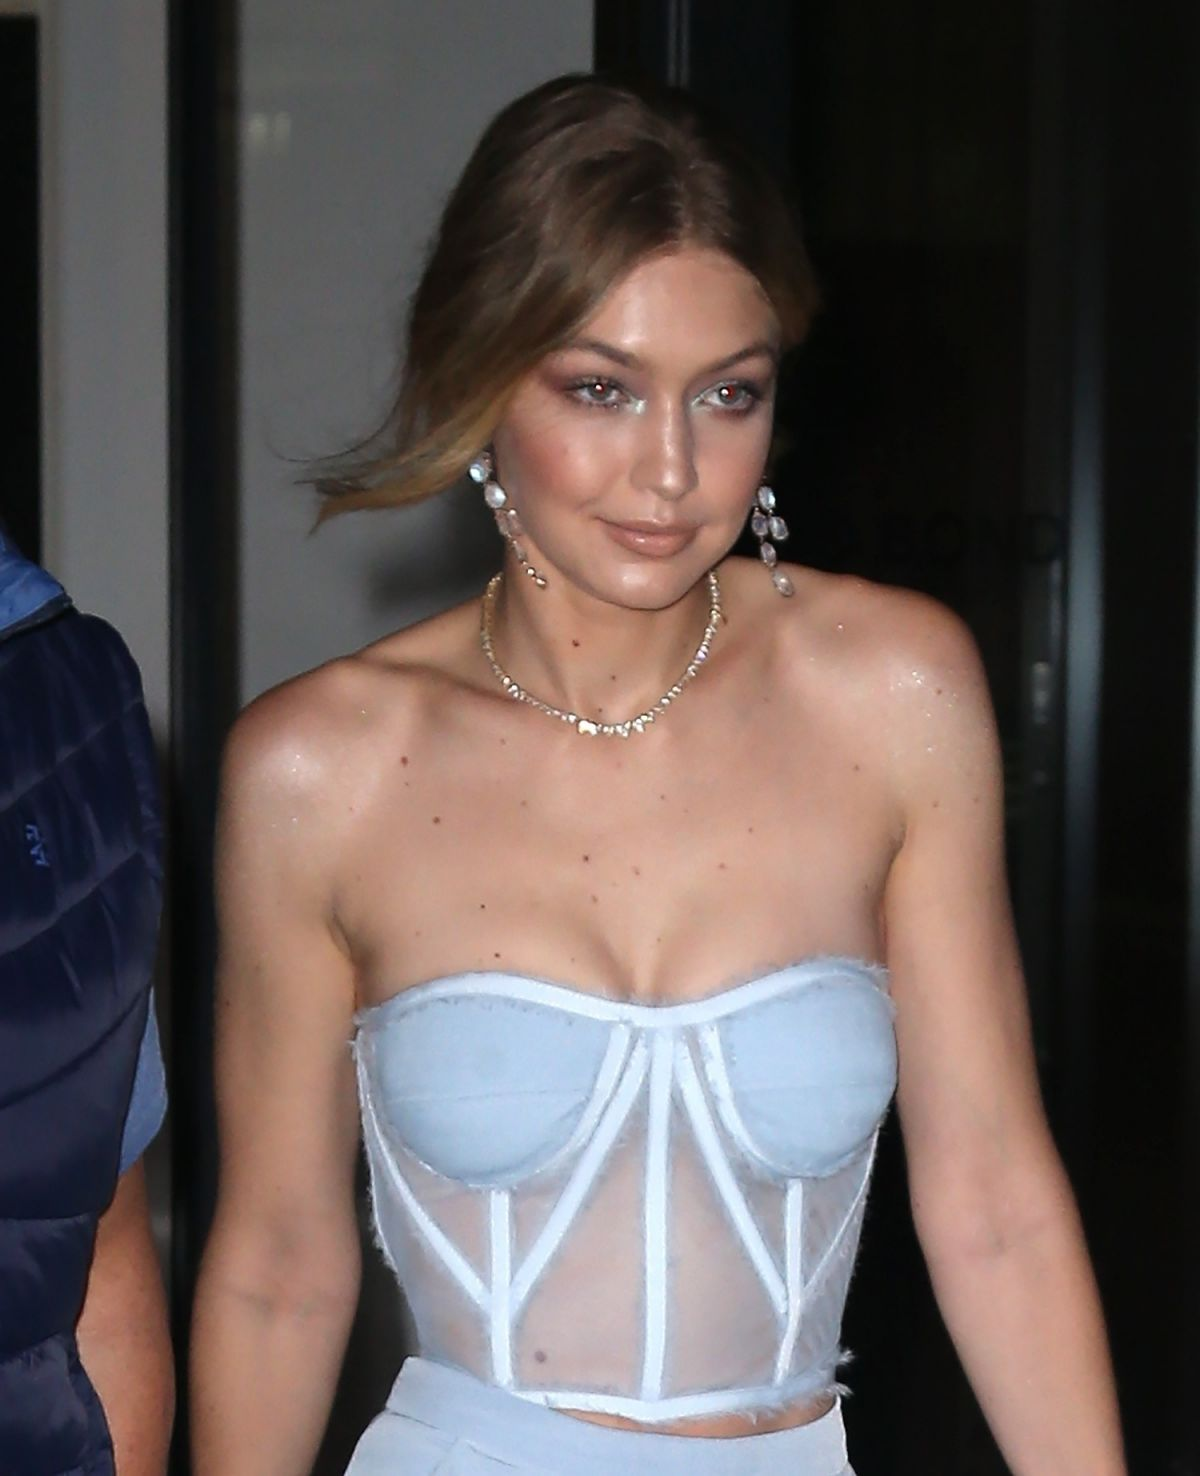 gigi-hadid-leaves-her-apartment-in-new-york-10-09-2017-10.jpg